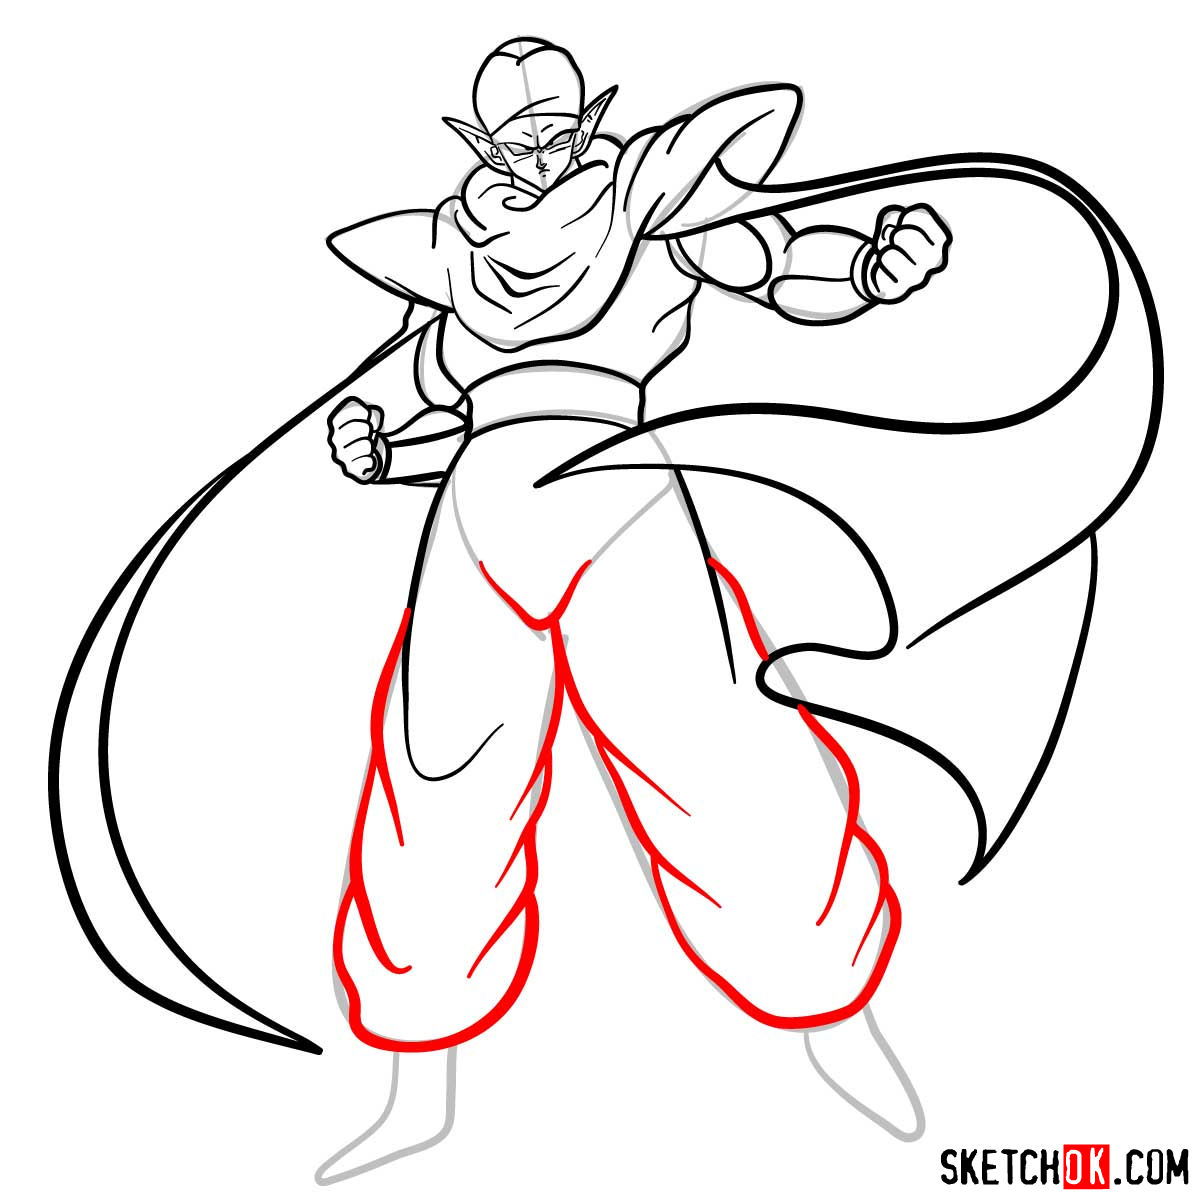 How to draw Piccolo | Dragon Ball anime - step 12